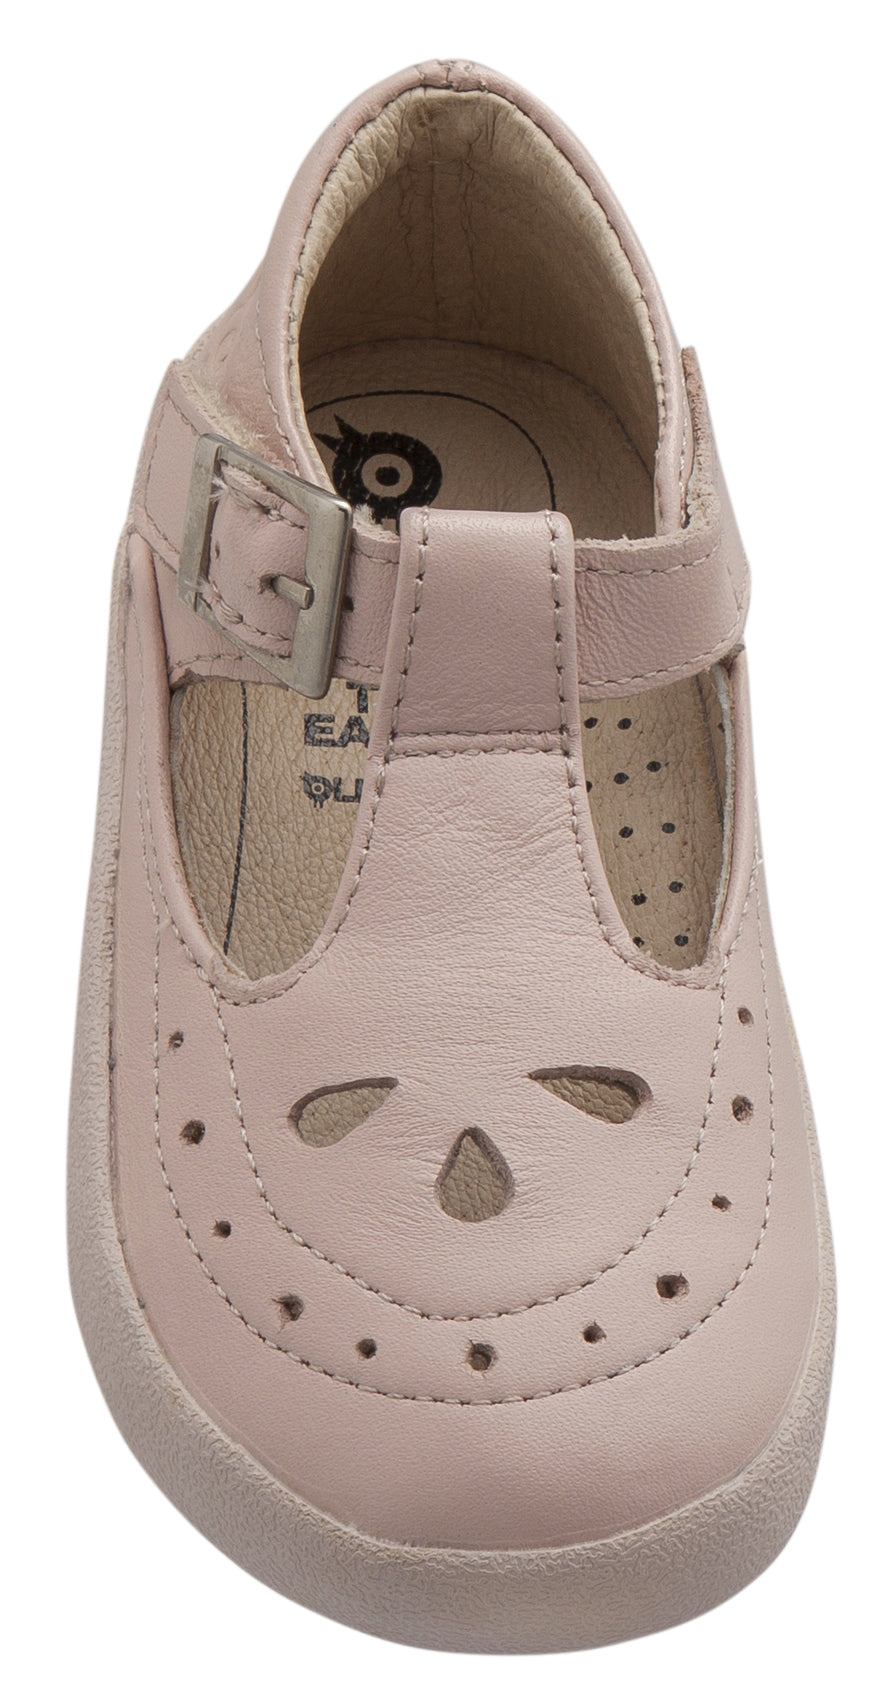 Old Soles Girl's 5011 Royal Shoe Premium Leather T-Strap Sneaker Shoe, Powder Pink / Pink Sole